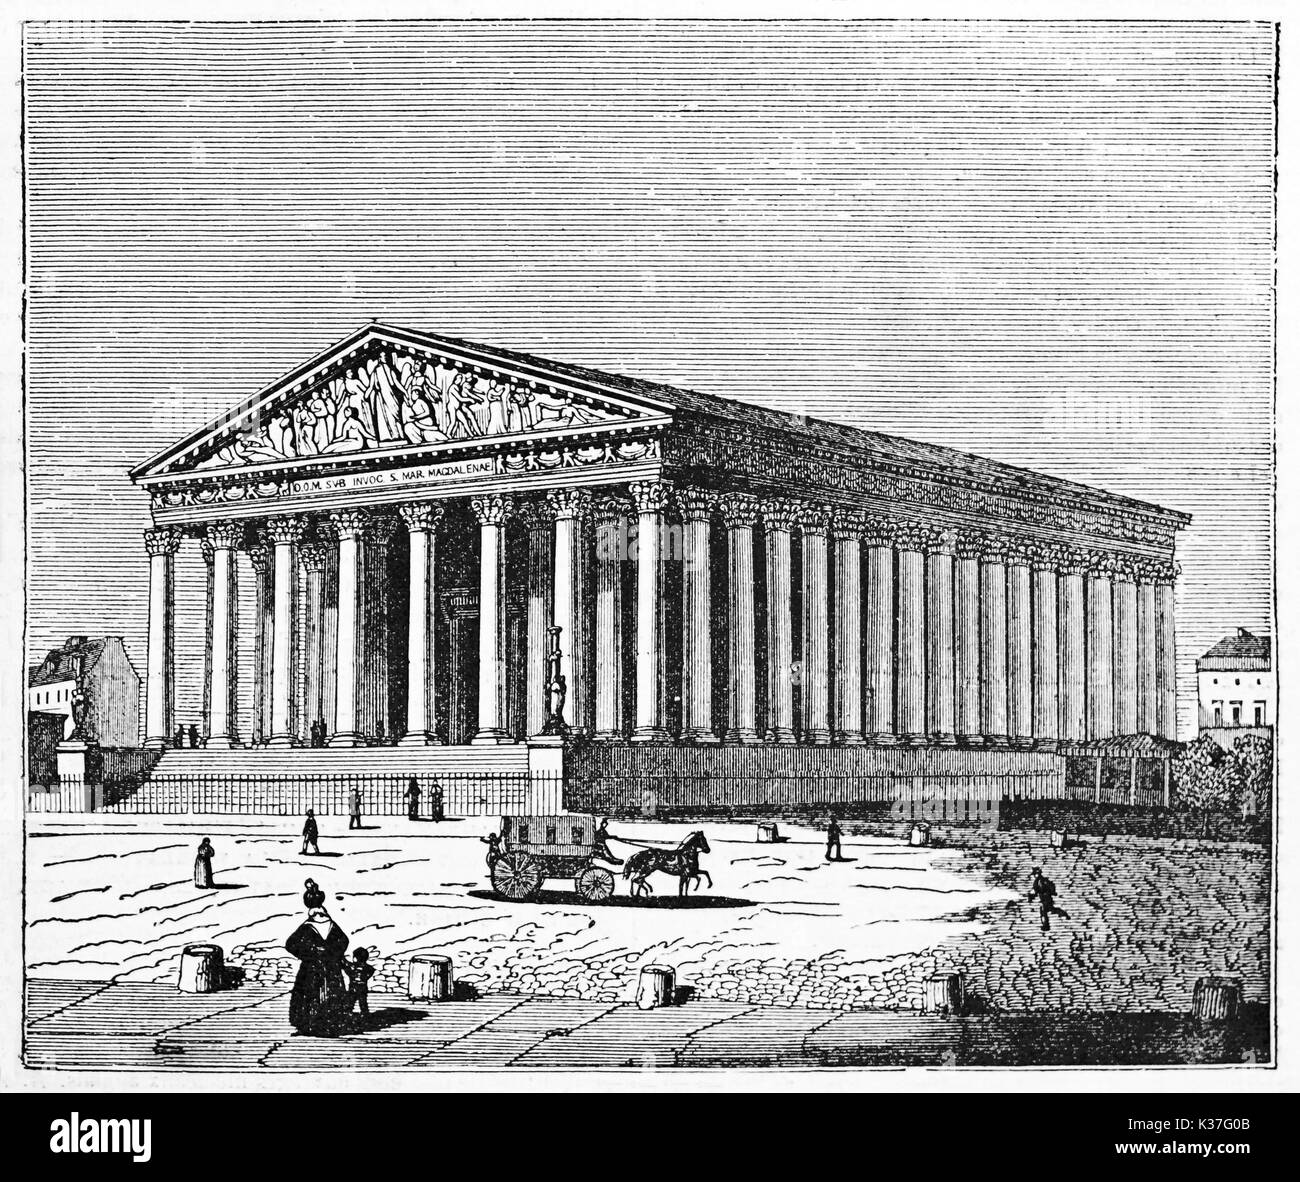 Overall view of La Madaleine church, Paris, similar to an ancient greek temple. Old Illustration by Jackson published on Magasin Pittoresque Paris 1834 - Stock Image